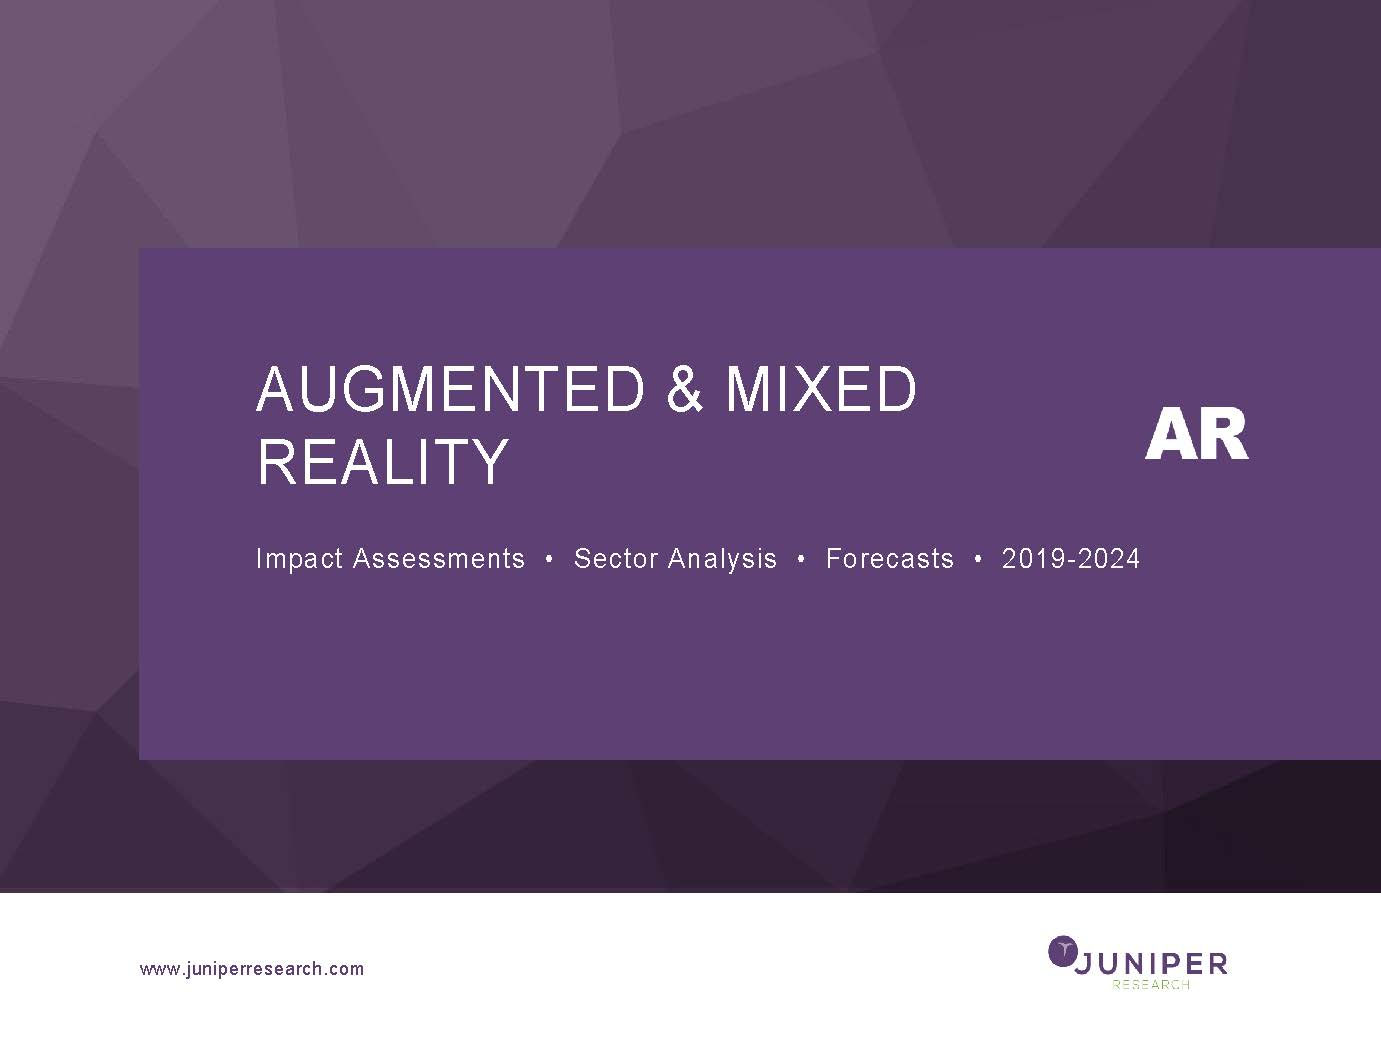 Augmented & Mixed Reality